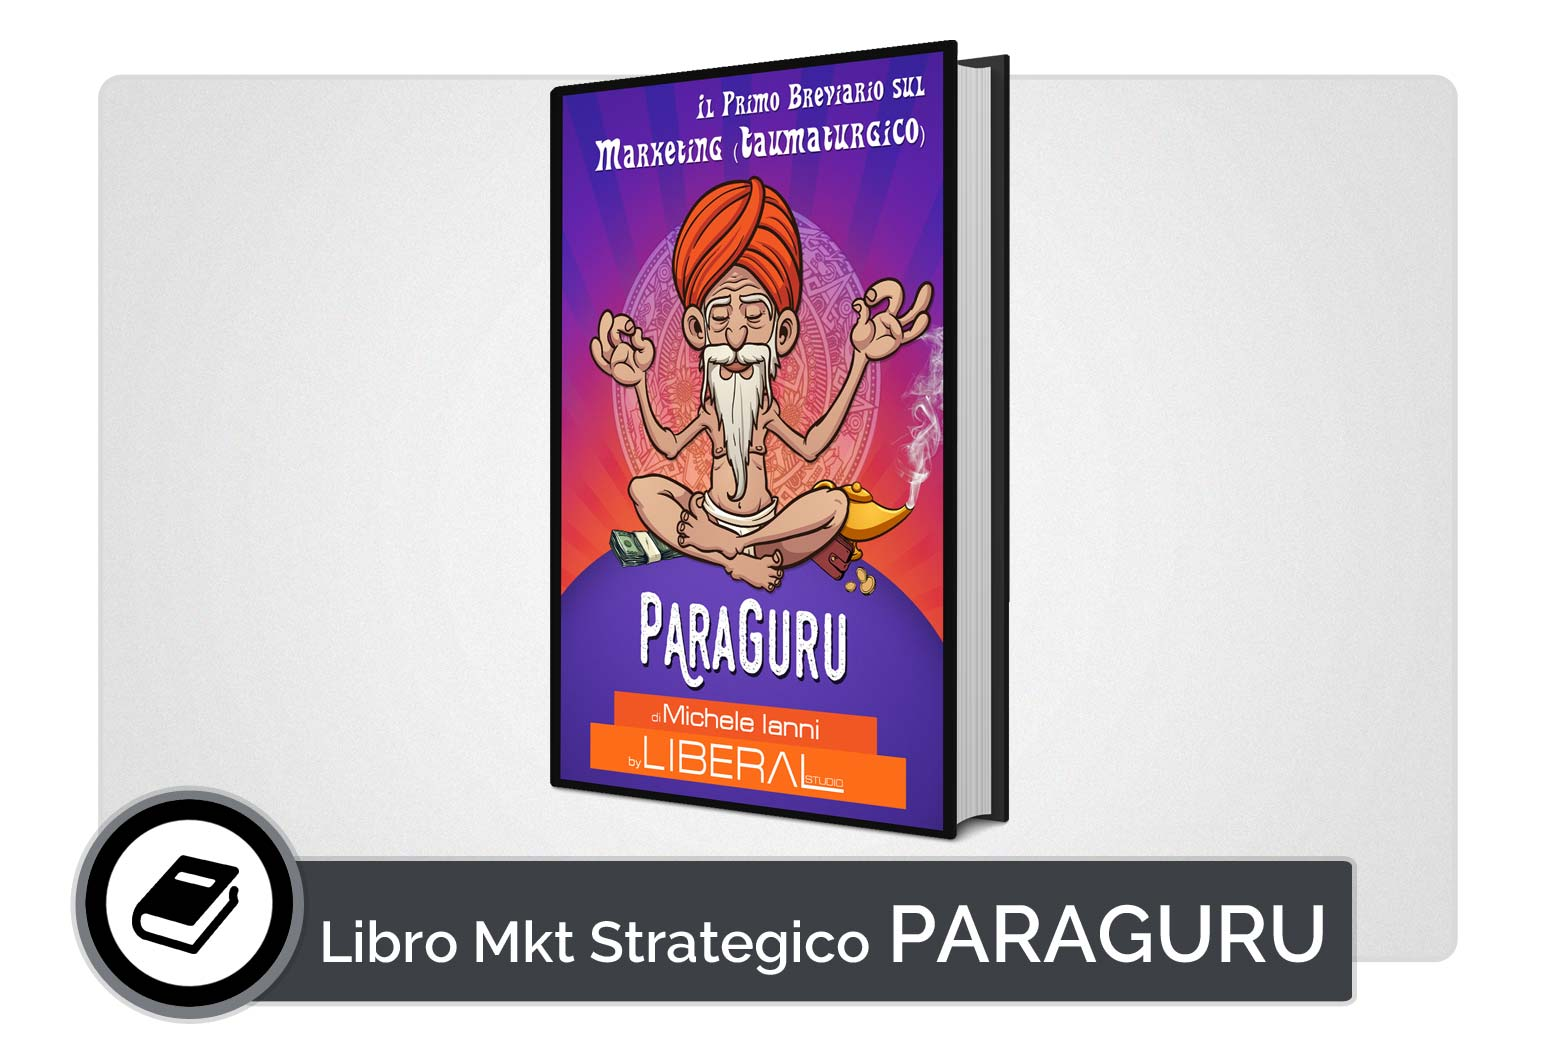 liberal studio libro paraguru marketing strategico